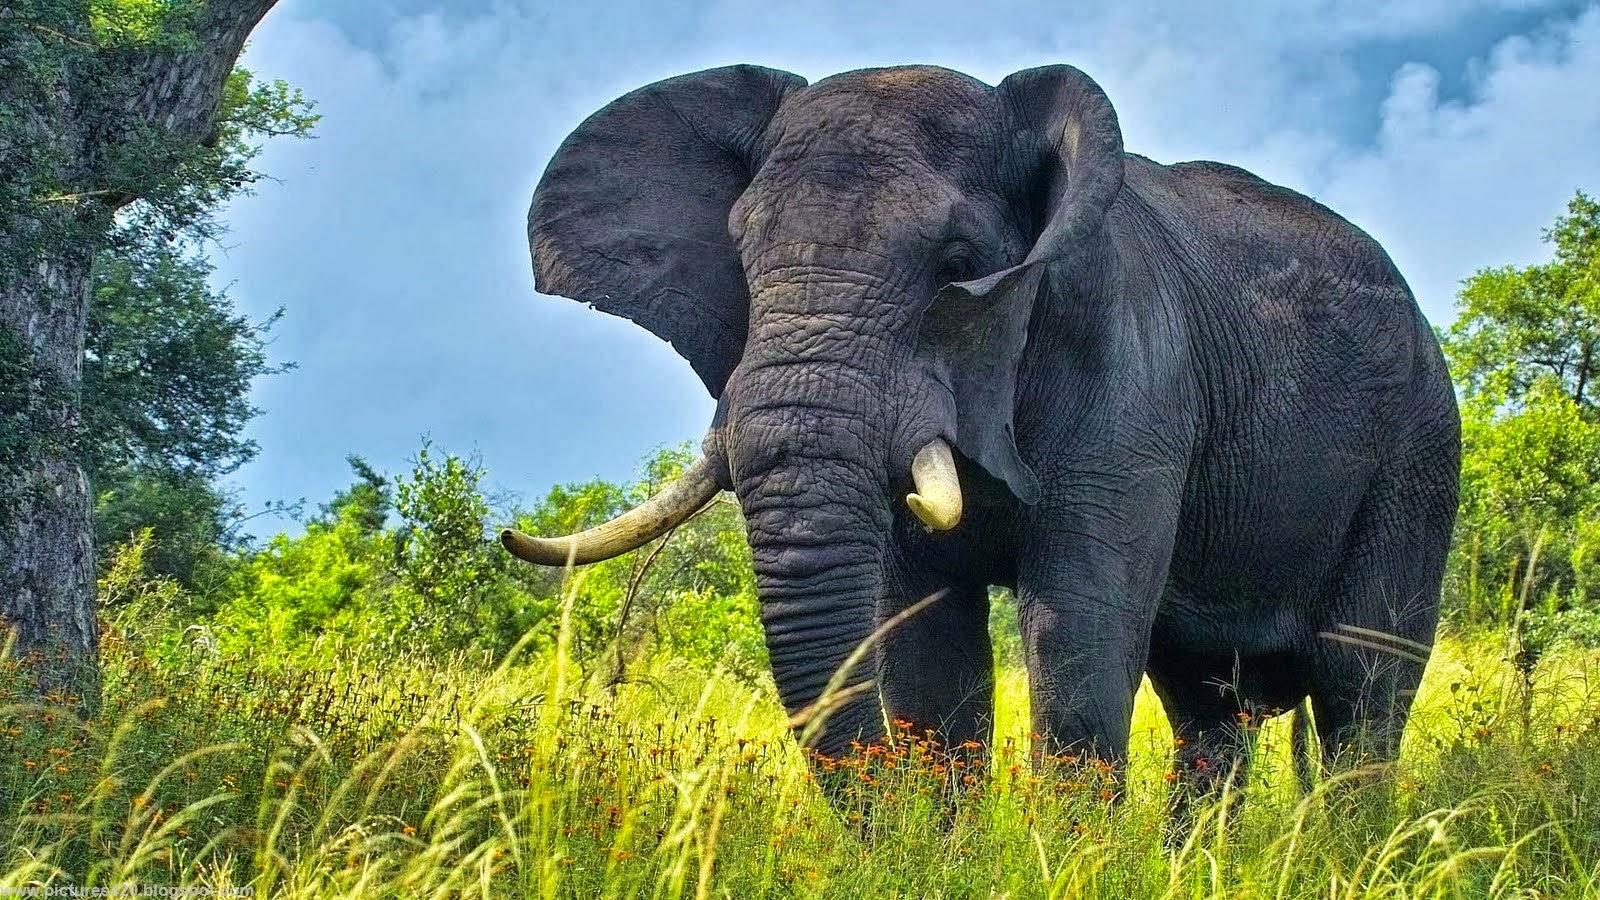 Elephant Wallpaper Free Download Maydang